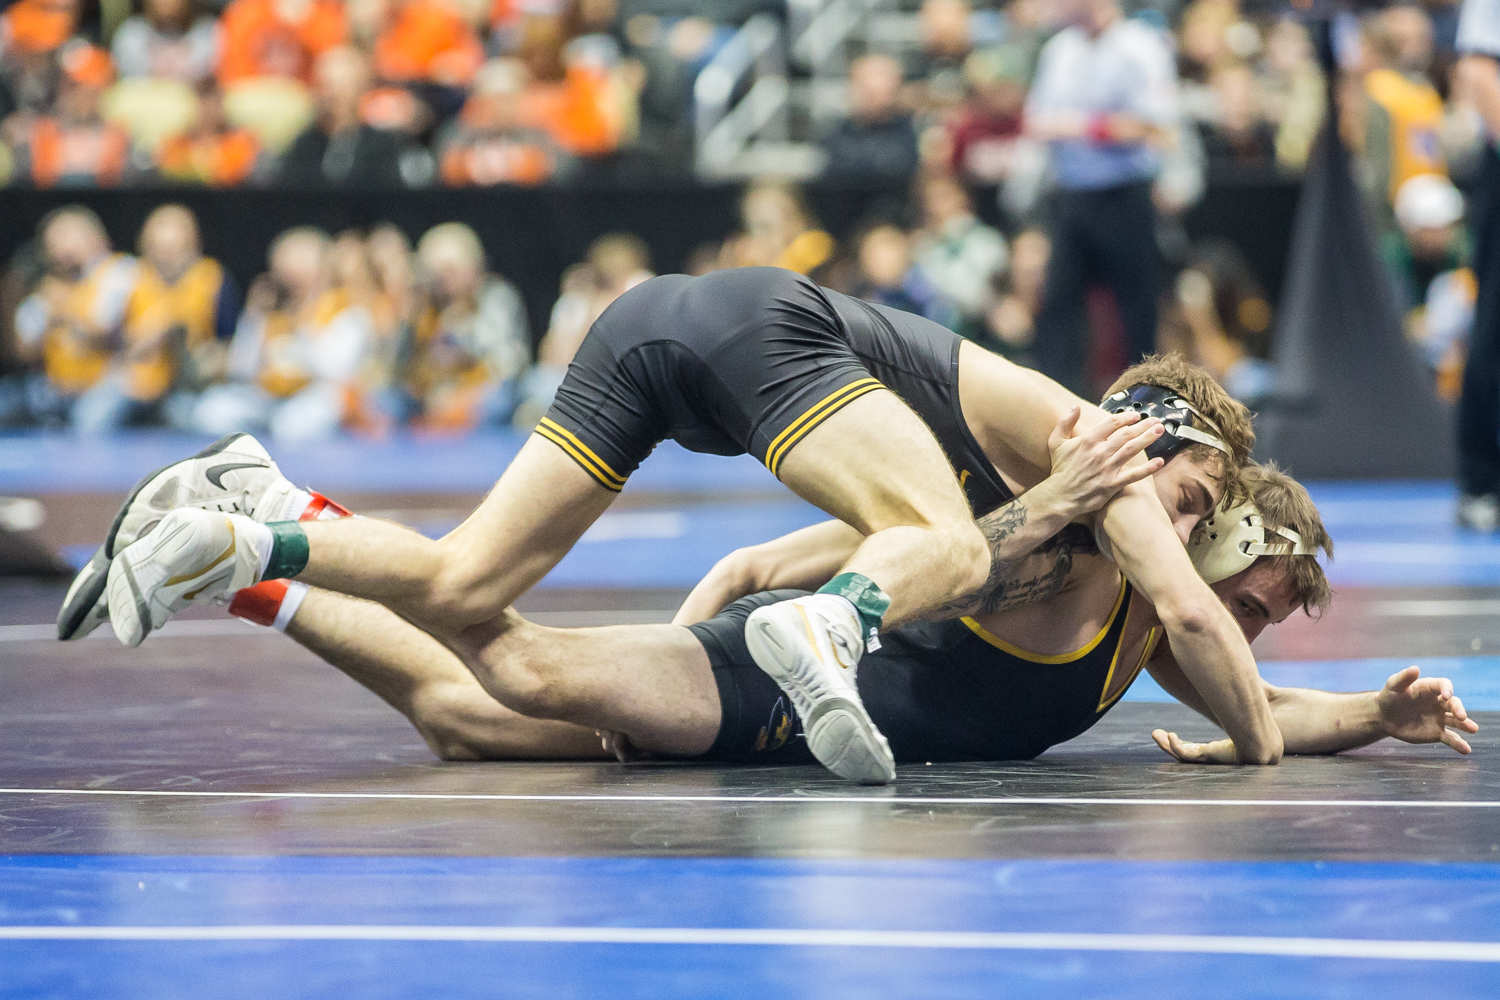 Iowa's 133-pound Austin DeSanto wrestles Appalachian State's Cody Russell during the first session of the 2019 NCAA D1 Wrestling Championships at PPG Arena in Pittsburgh, PA on Thursday, March 21, 2019. Russell was disqualified, advancing DeSanto.